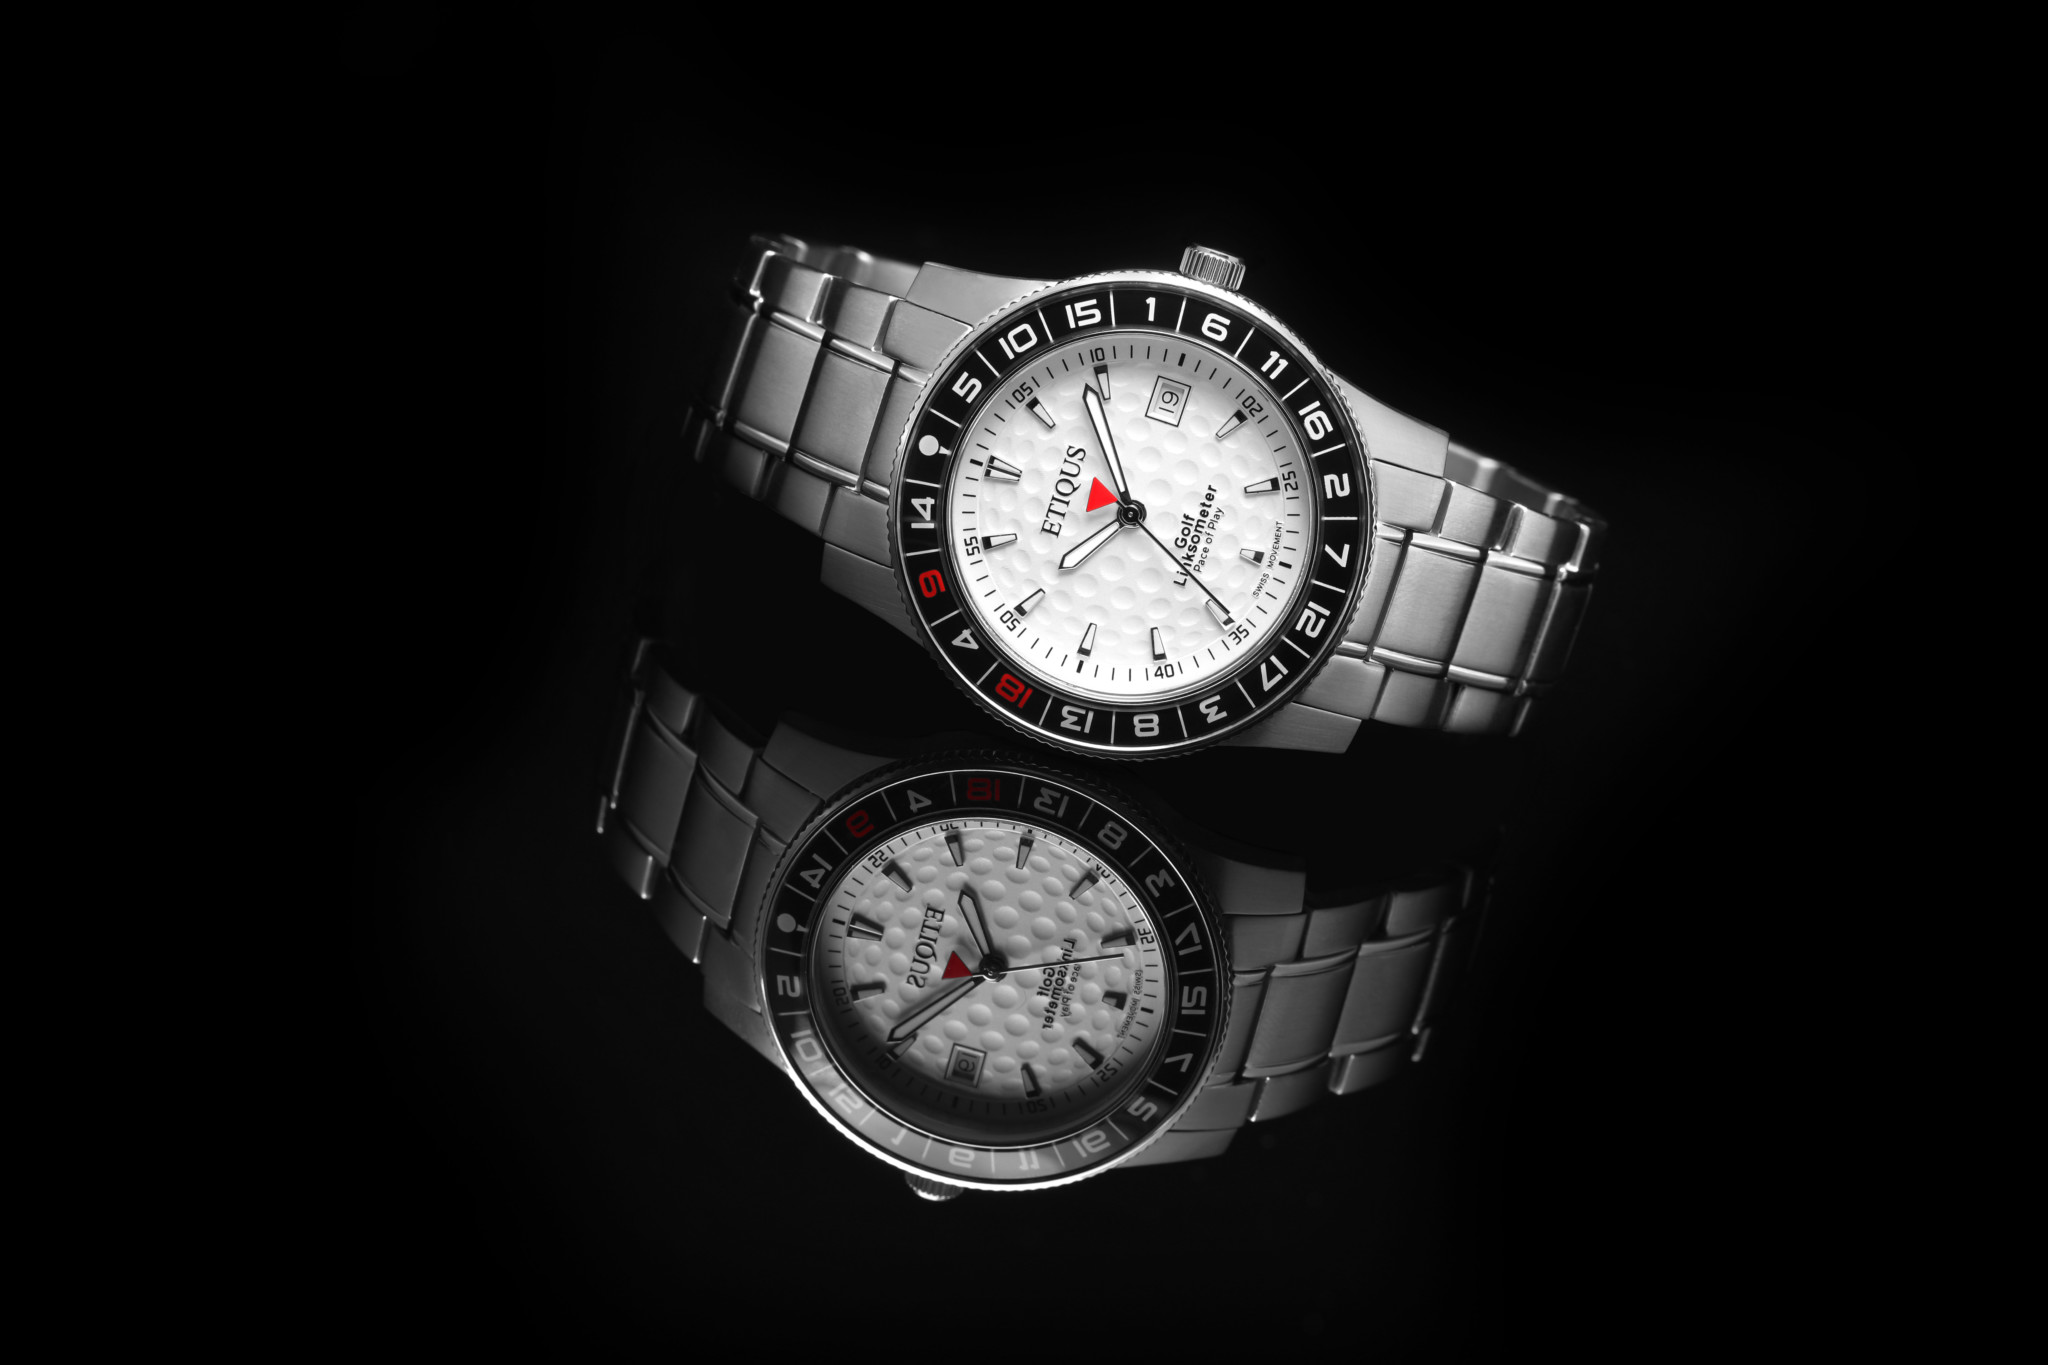 Etiqus Sport Tour Model 9118 - The bezel isn't just practical but is also a handy way of identifying the wearer as a golfer to other enthusiasts.